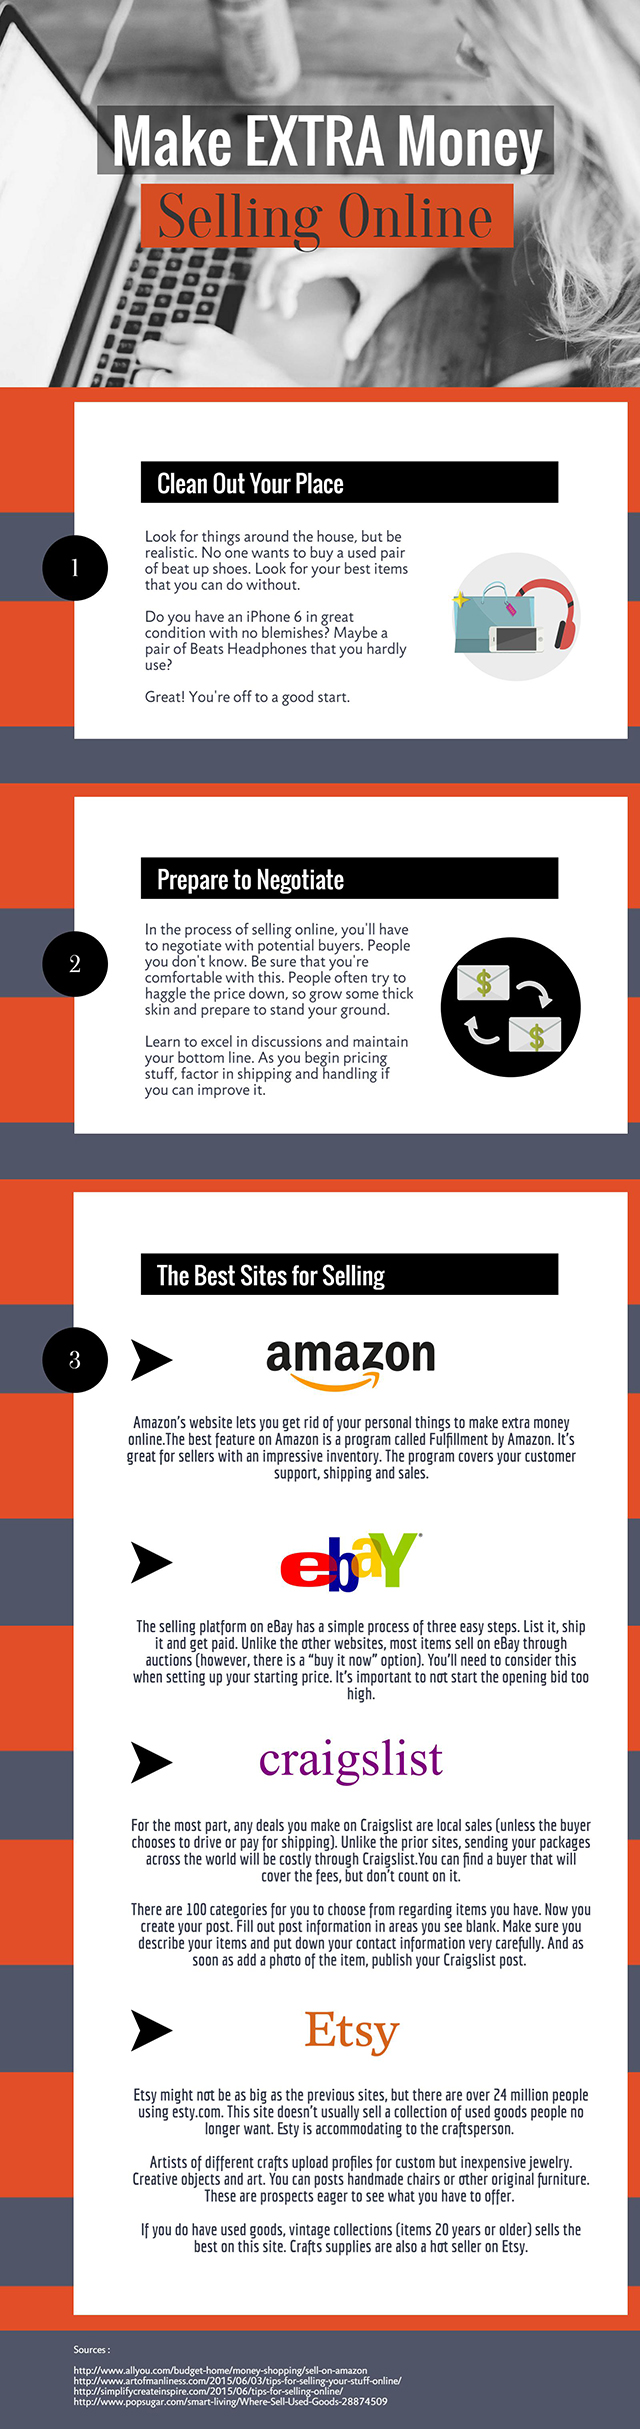 Make Extra $ Selling Online - Infographic